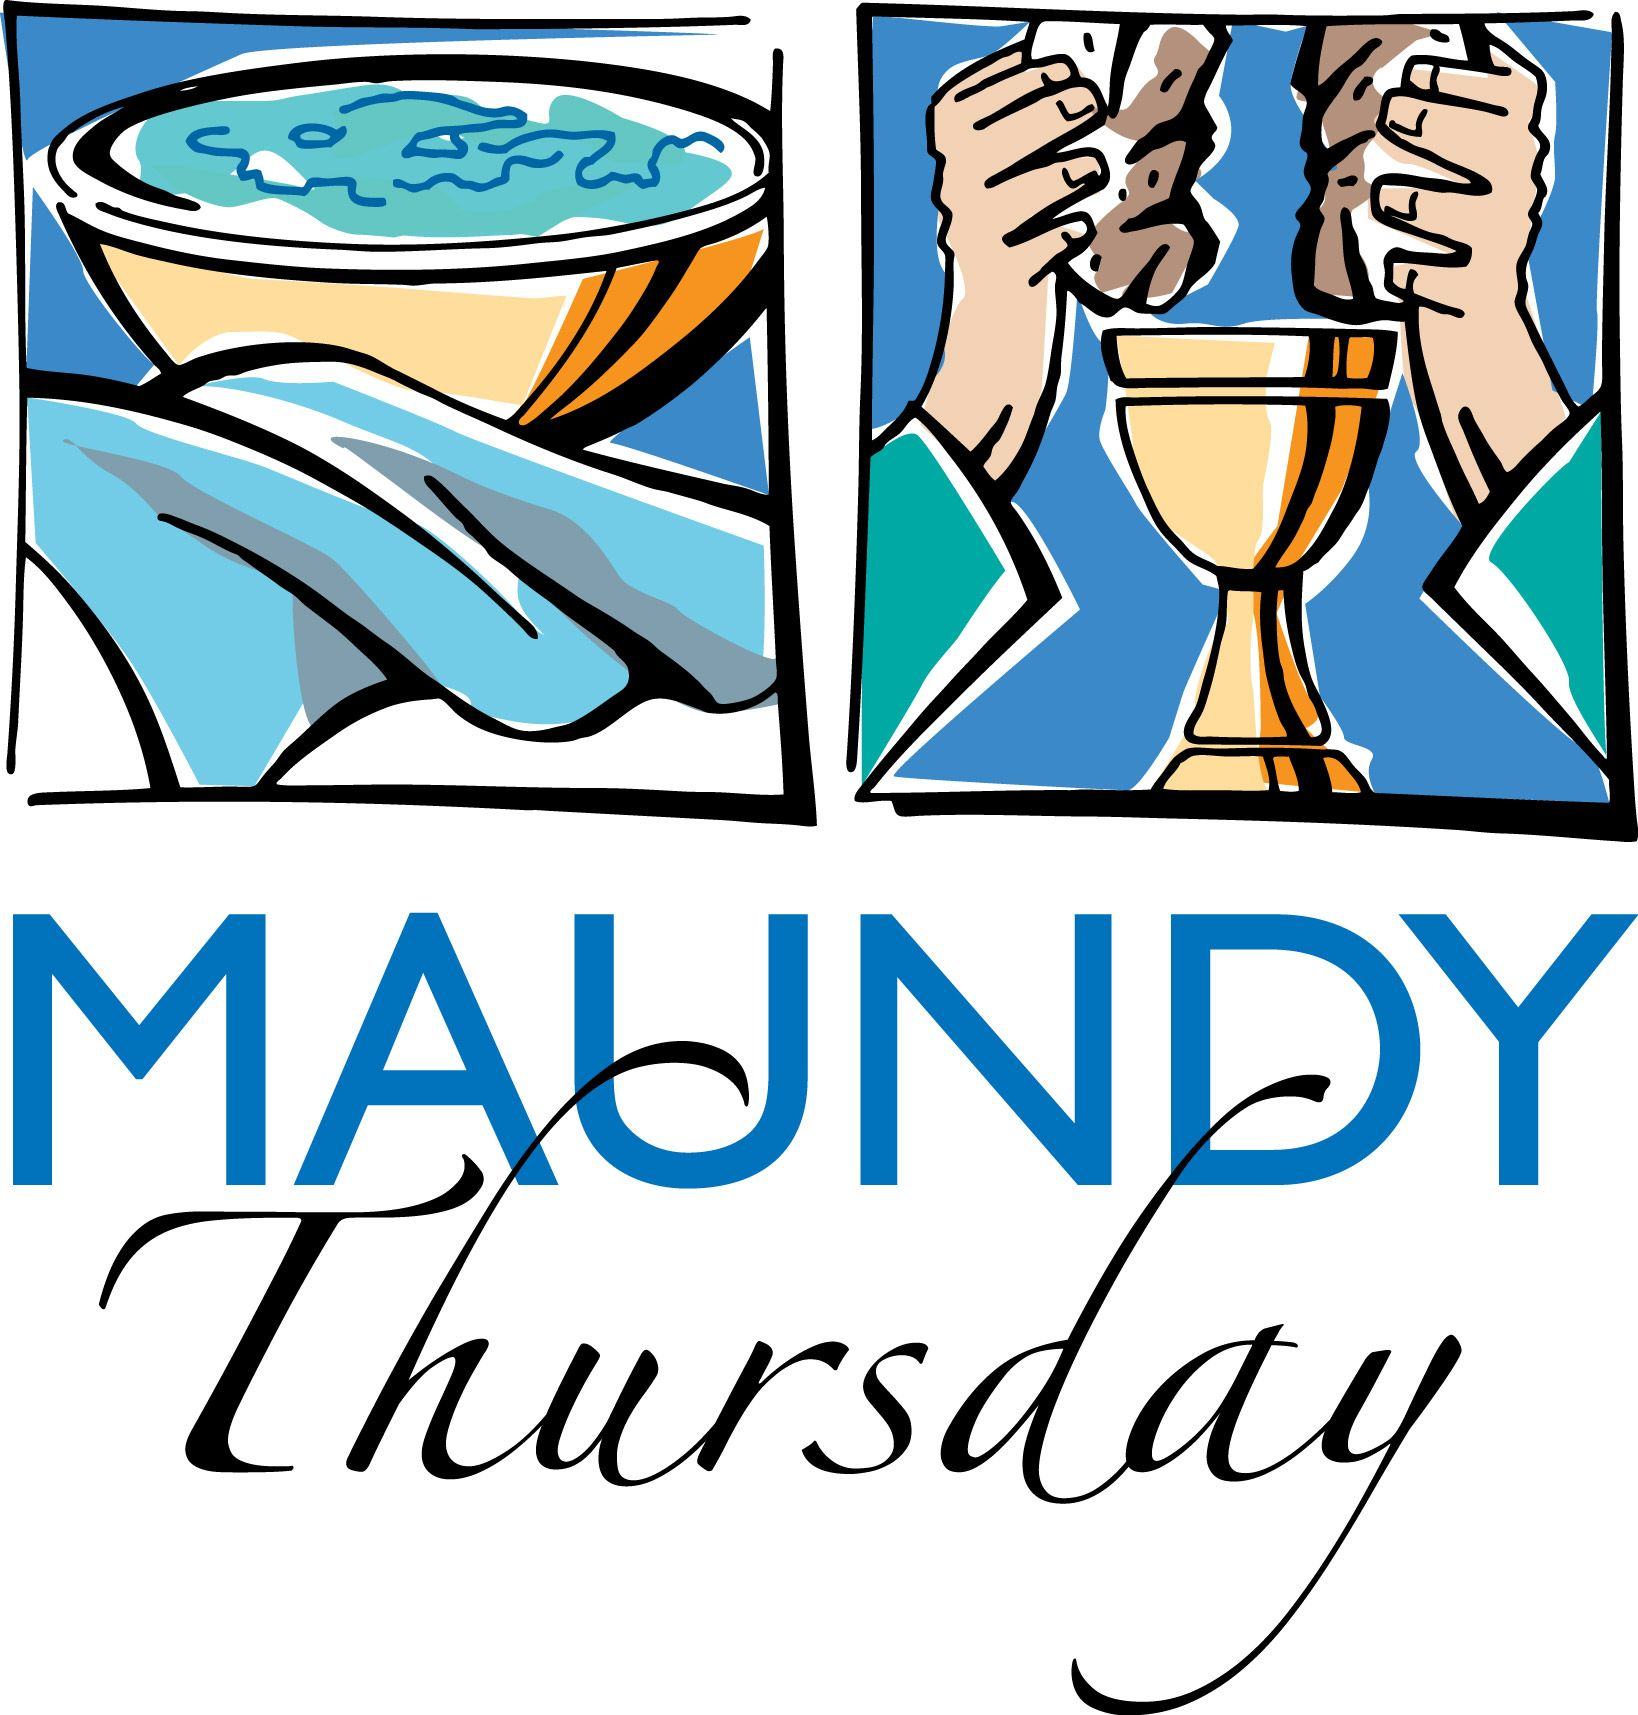 images of maundy thursday in clip art maundy thursday service rh pinterest com Maundy Thursday Backgrounds Maundy Thursday Bulletin